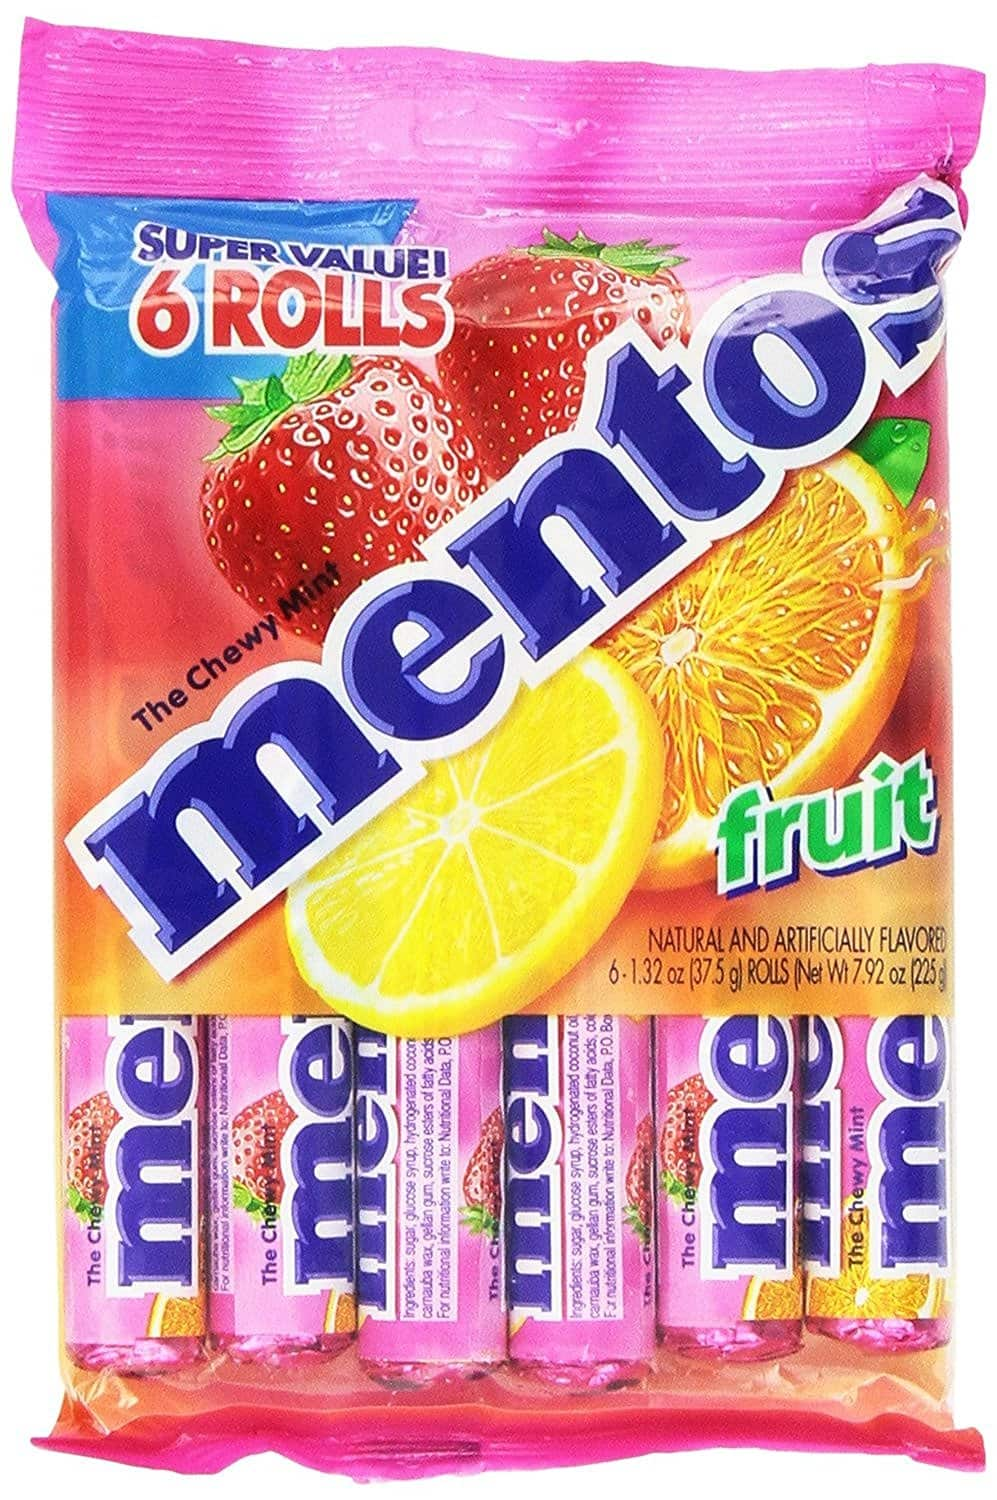 Mentos Rolls, Fruit, 7.92 Ounce Rolls, 6 Count - $2.74 w/ 15% Subscribe & Save  $3.06 with 5%